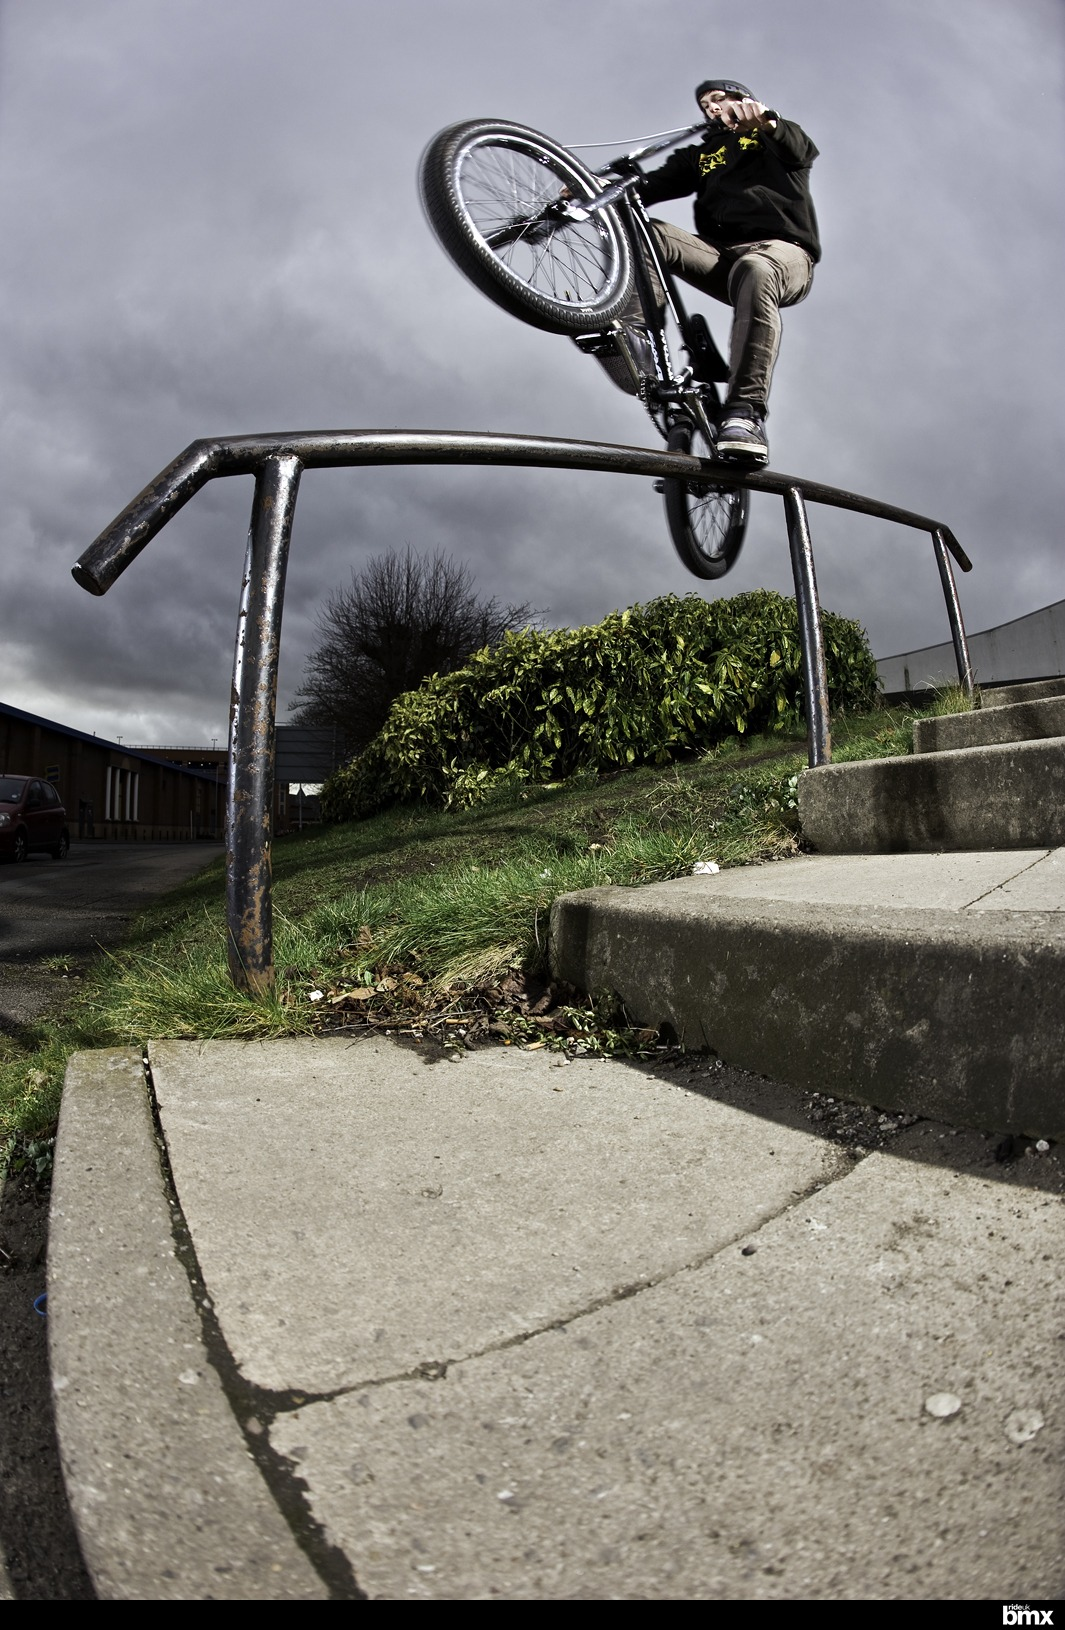 This was the first over to Levitator grind Phil had ever pulled on street. NBD Wrexham style...